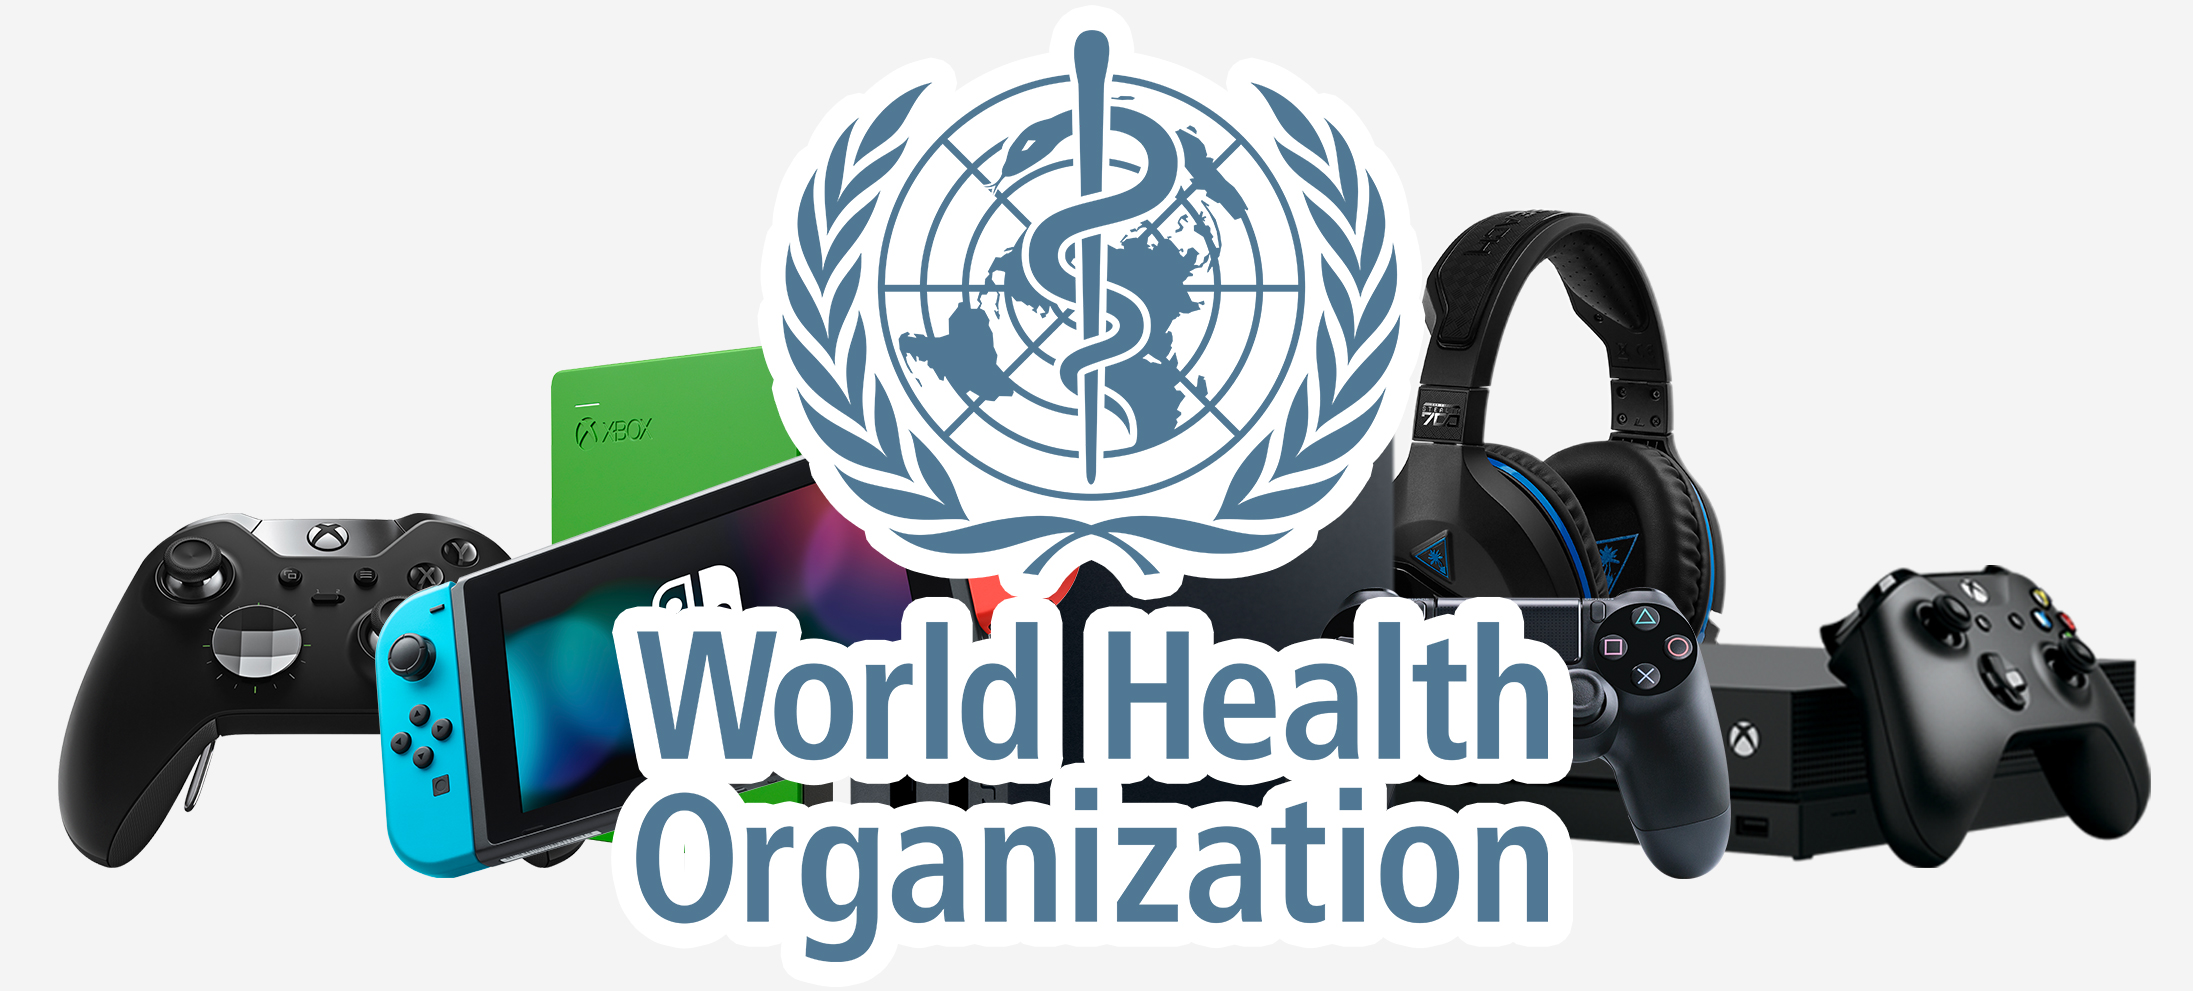 World Health Organization logo pile of video game controllers and systems